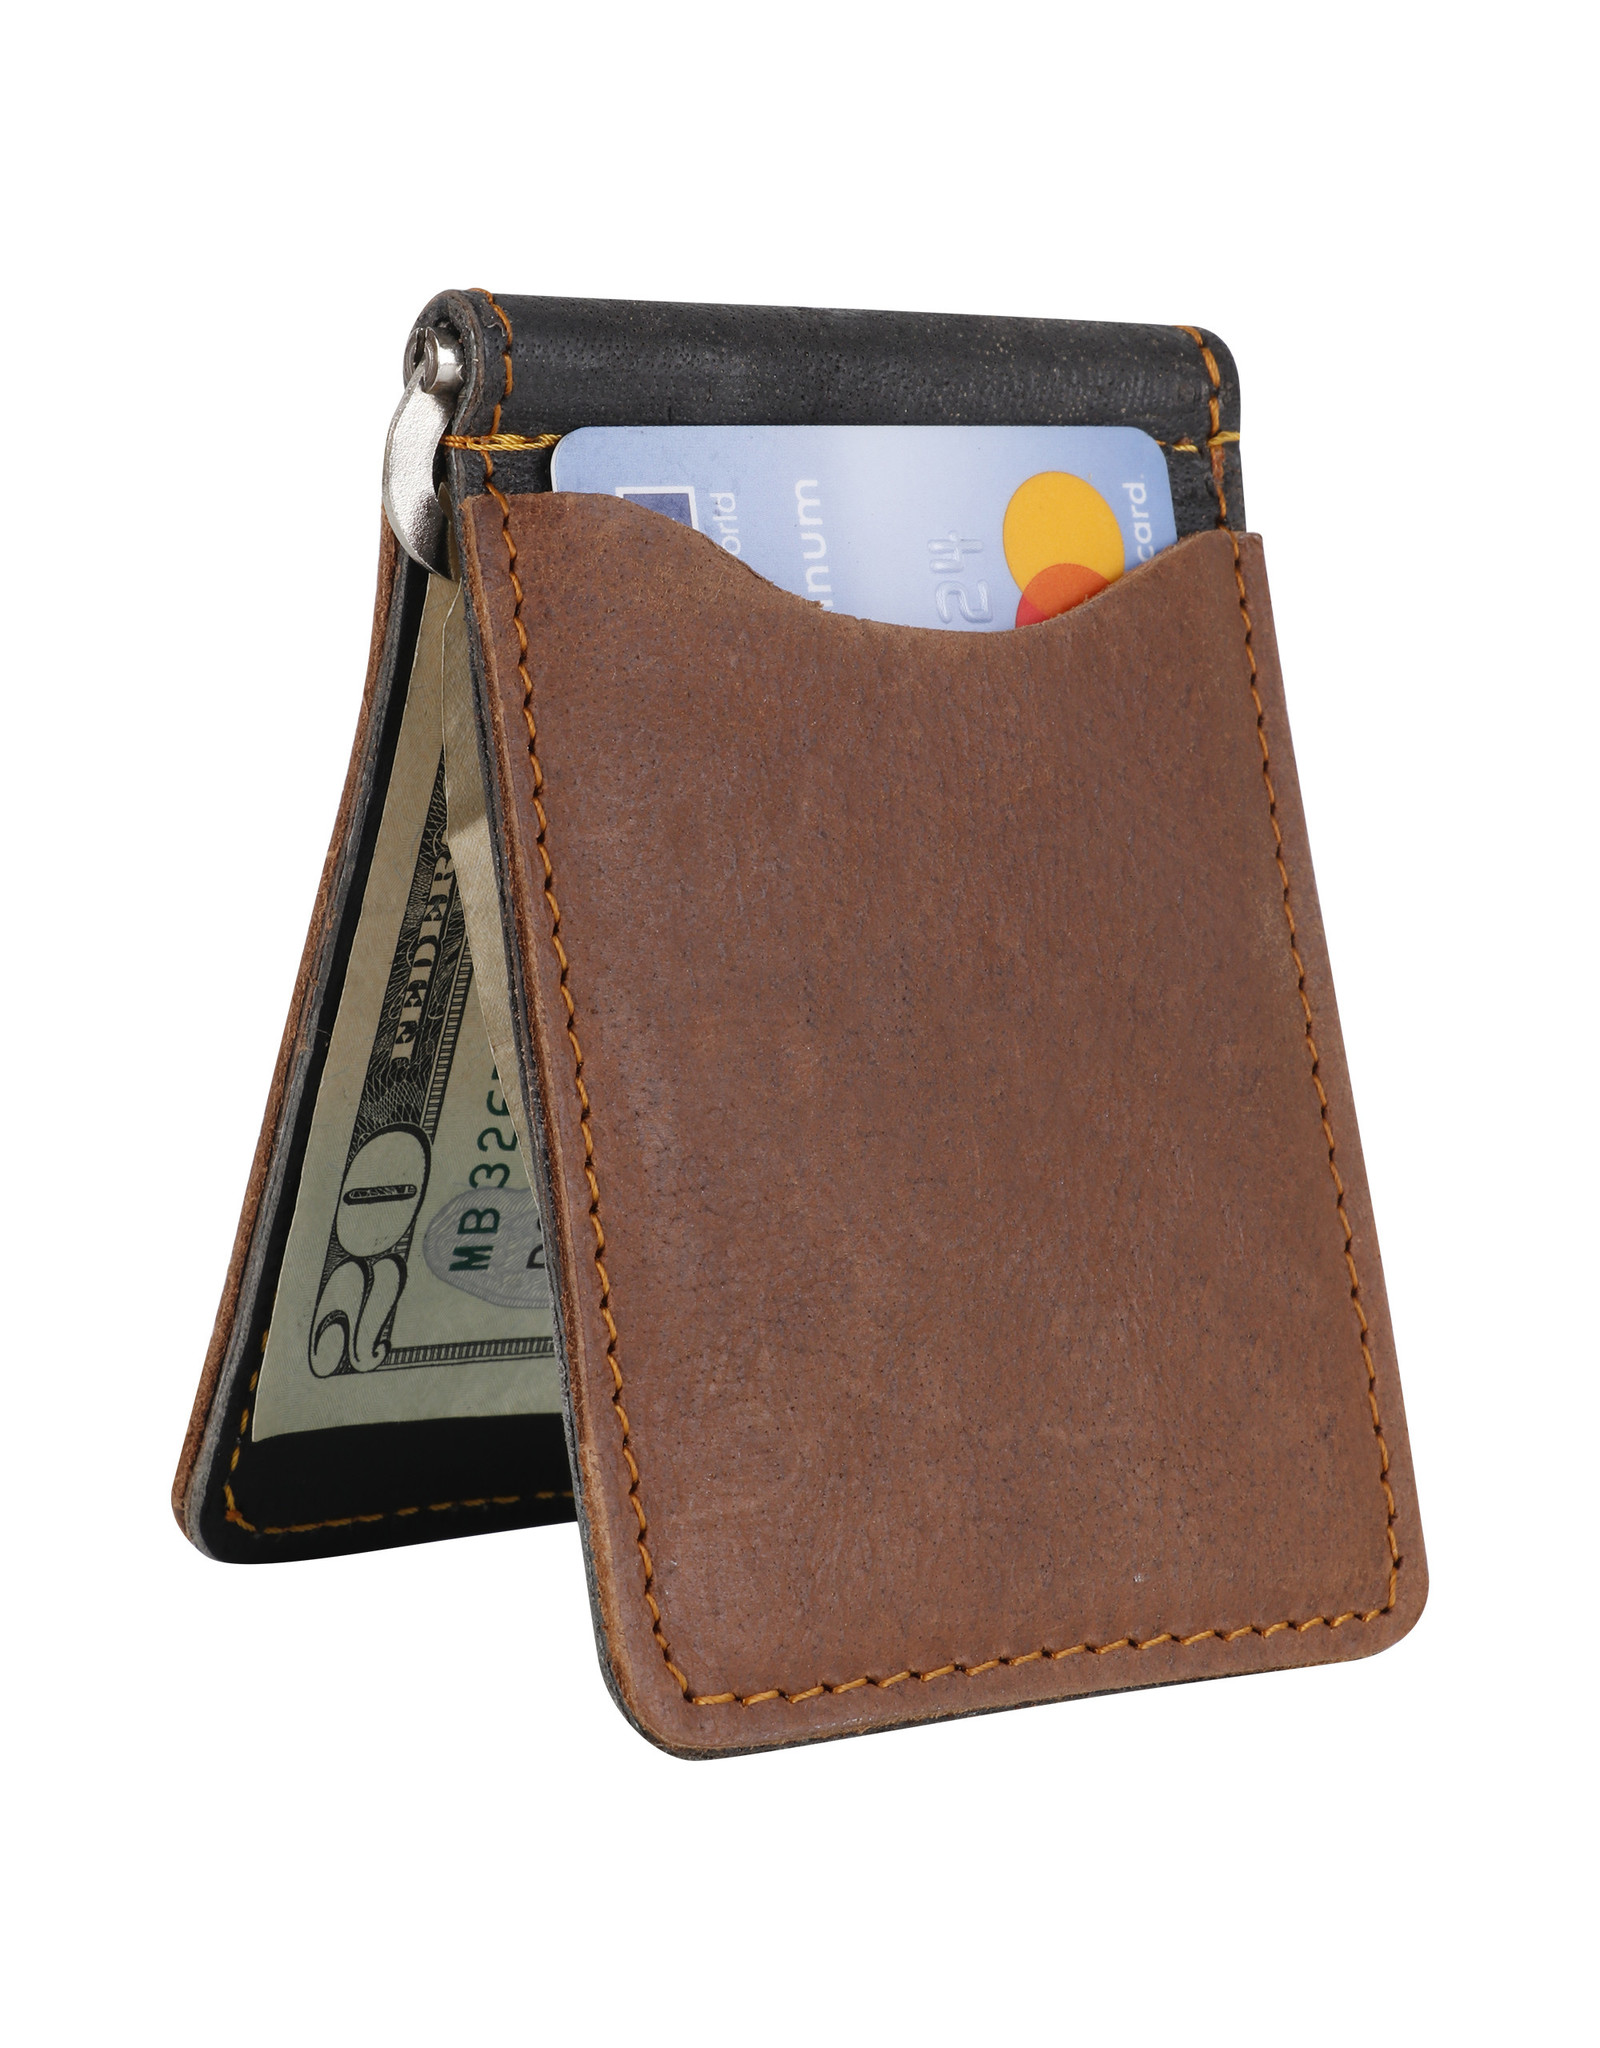 VB26-P7 RFID Money Clip